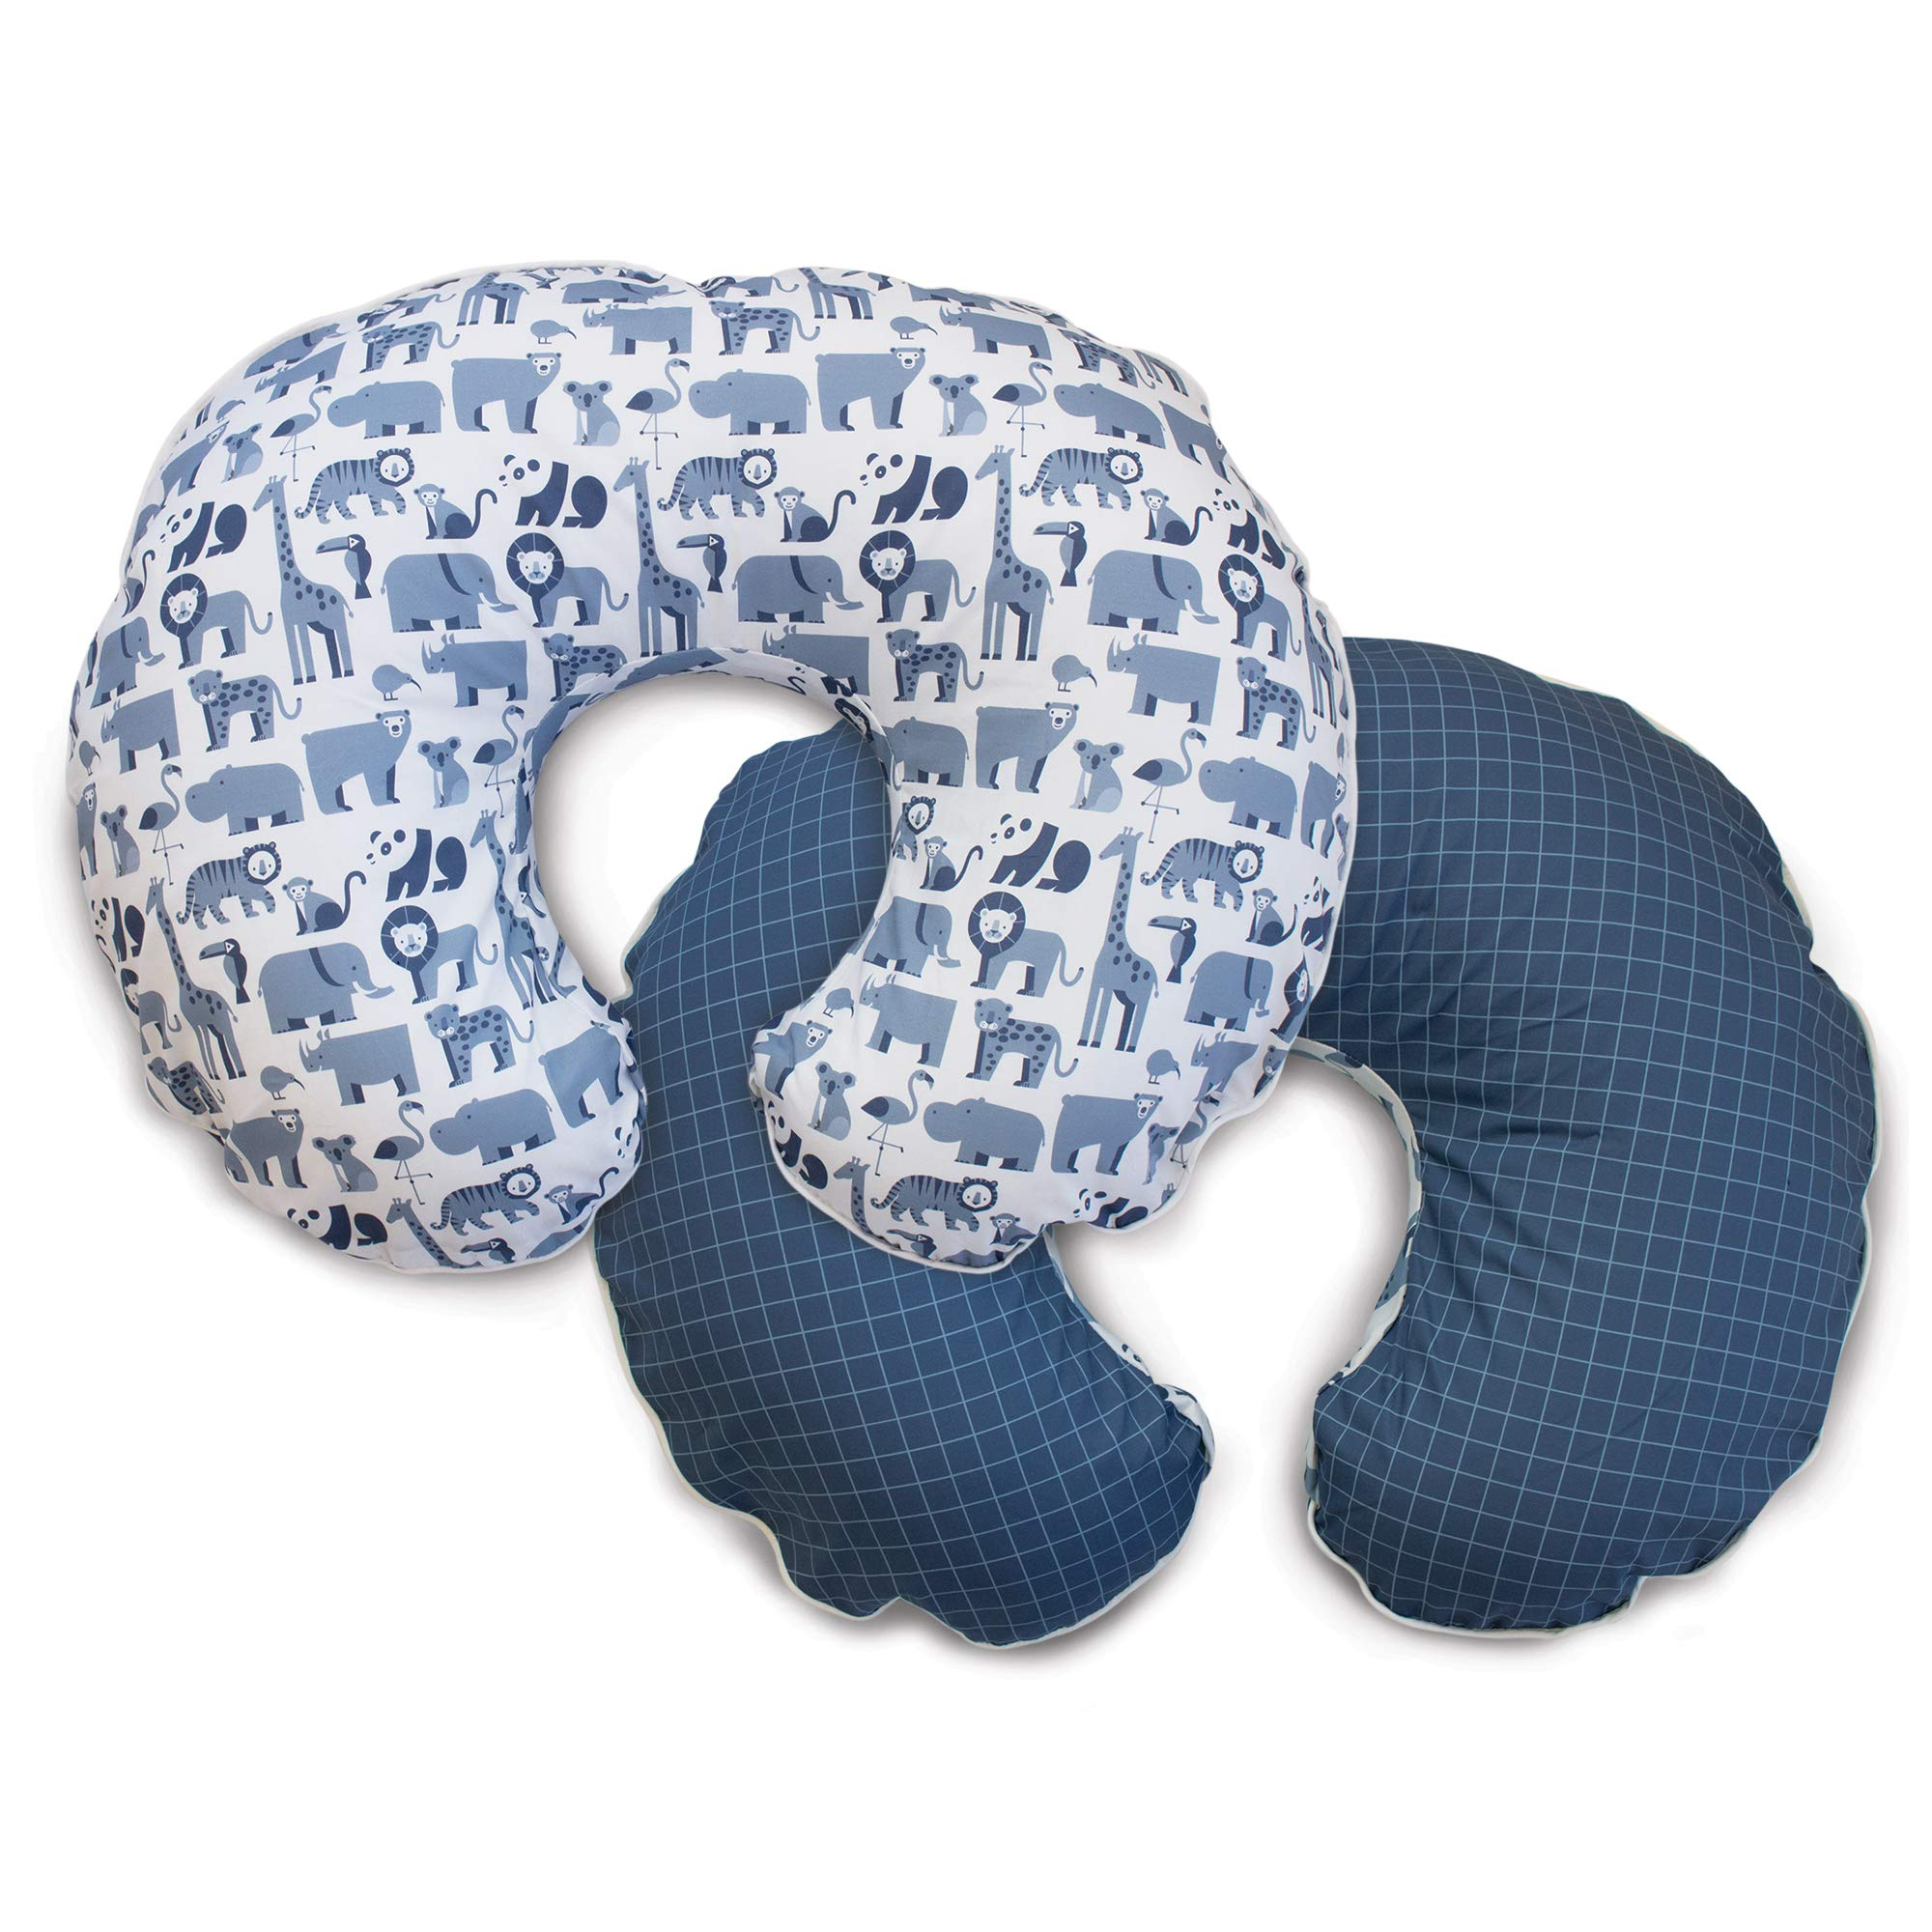 Boppy Premium Pillow Cover, Blue Zoo, Ultra-soft Microfiber Fabric in a fashionable two-sided design, Fits All Boppy Nursing Pillows and Positioners by Boppy